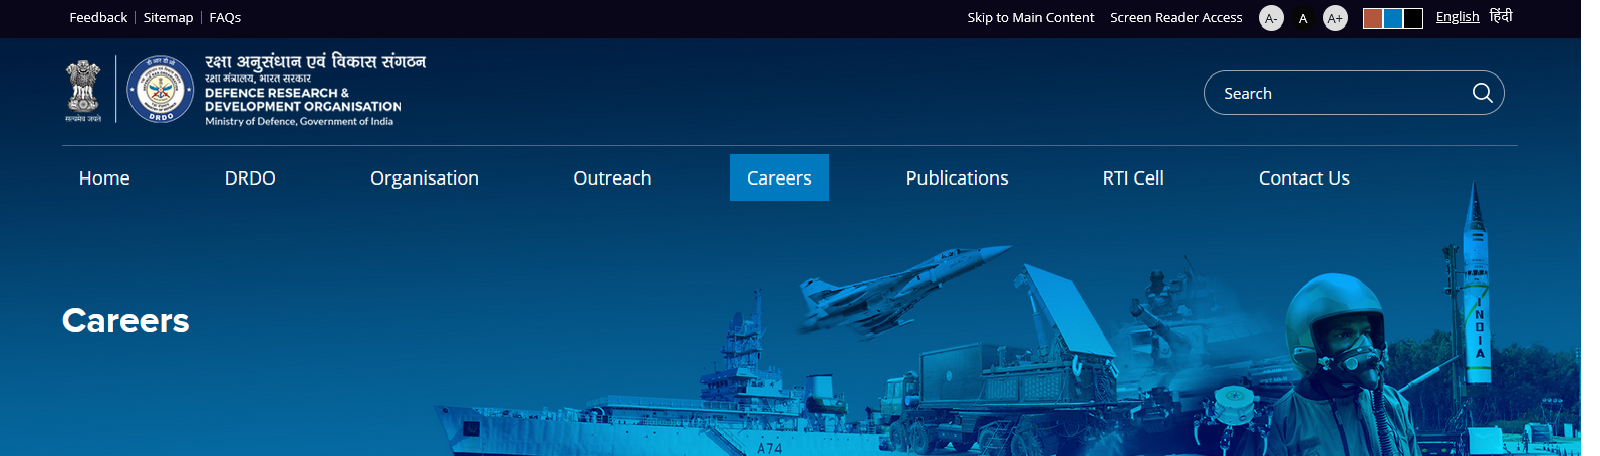 DRDO RAC GTRE Apprentice Online Form 2021 For 150 Post